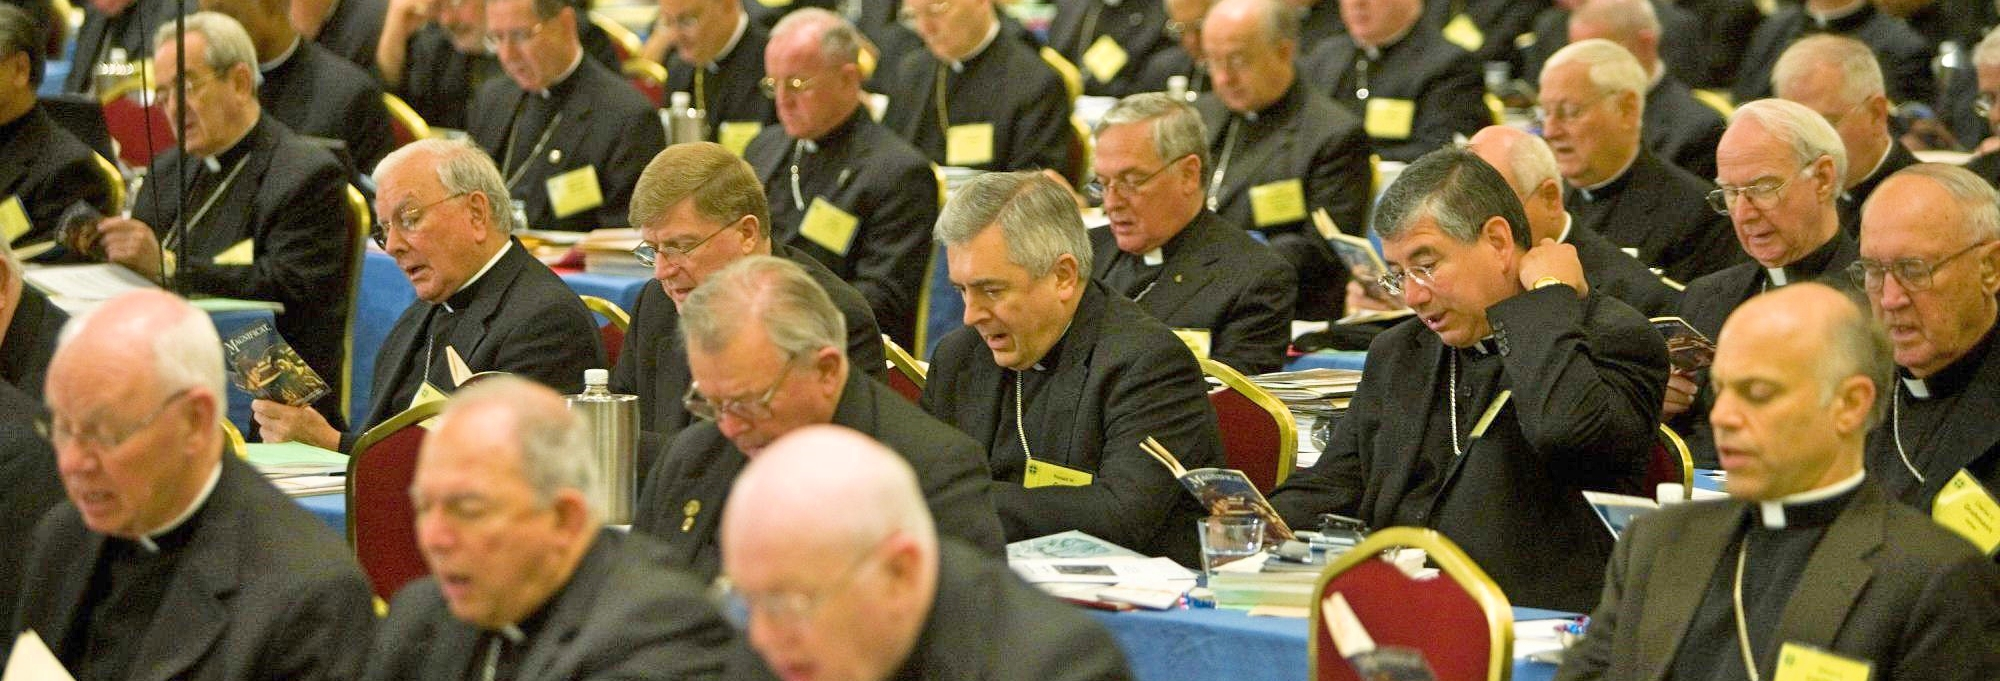 U.S. Conference of Catholic Bishops